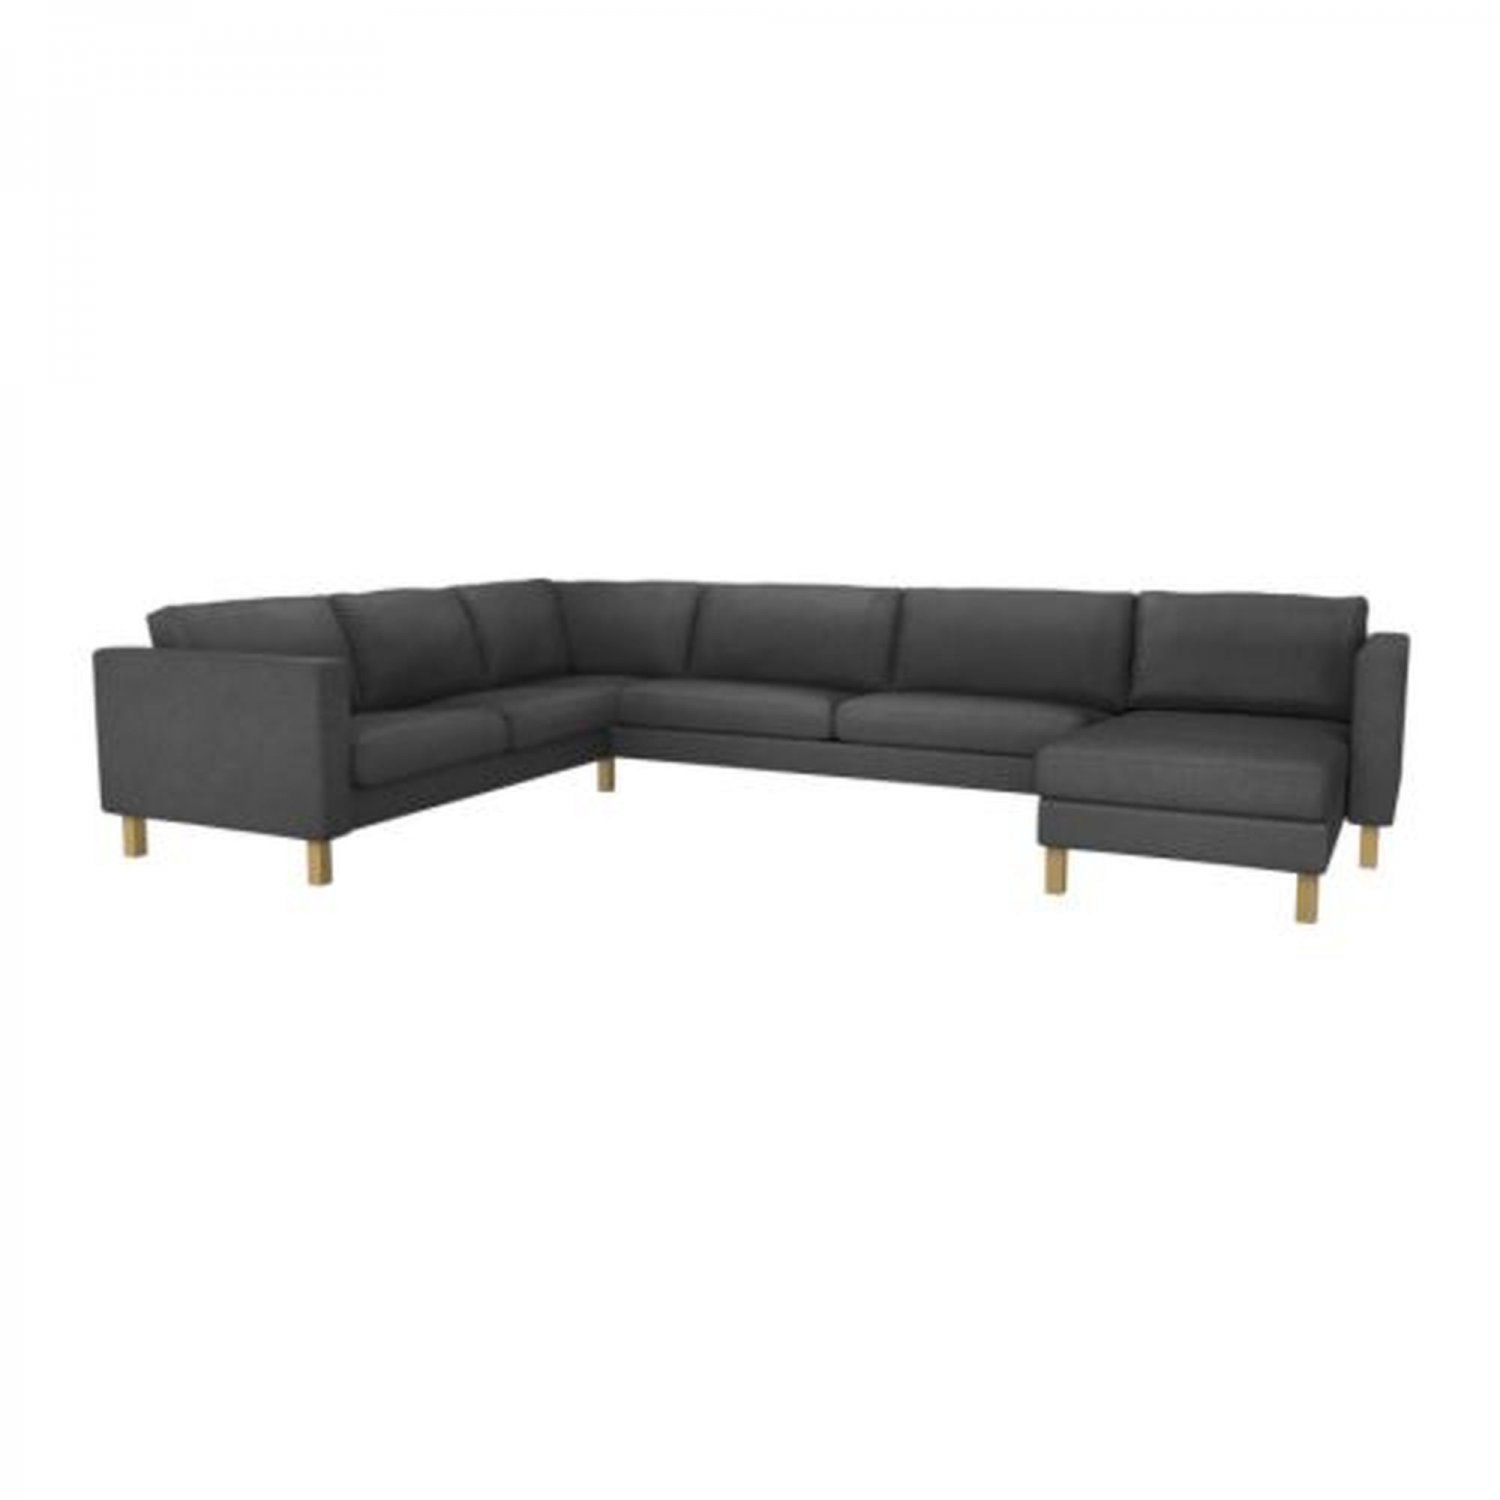 corner sofa with chaise dune furniture village ikea karlstad slipcover cover